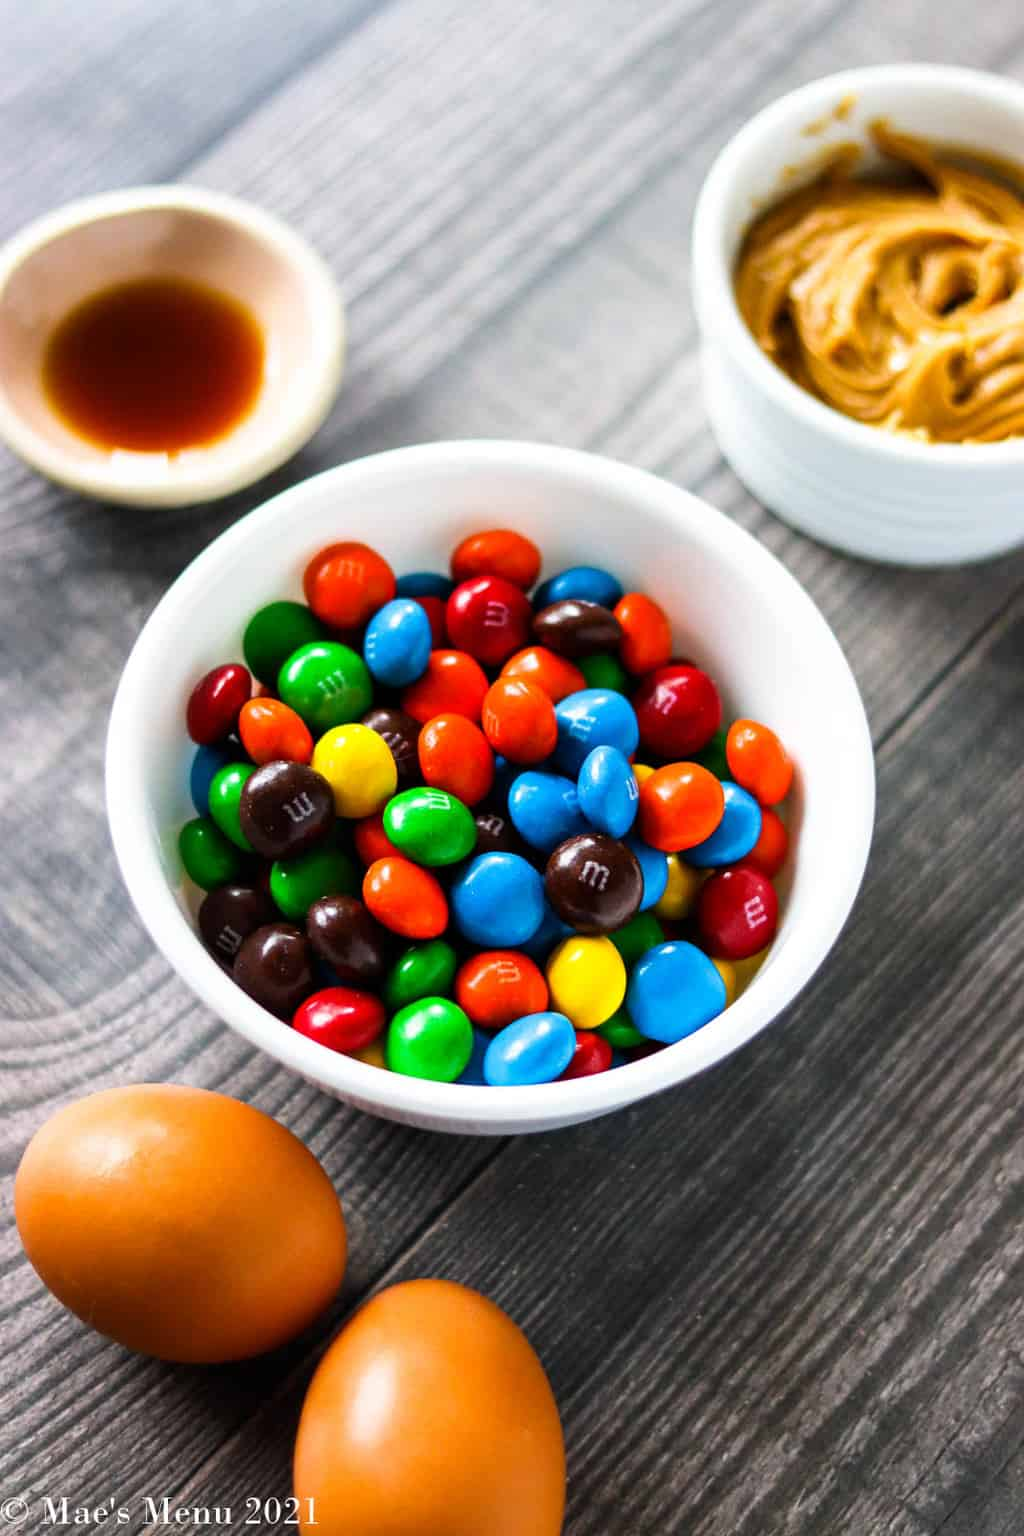 A dish of peanut butter M&Ms, eggs, peanut butter, and vanilla extract